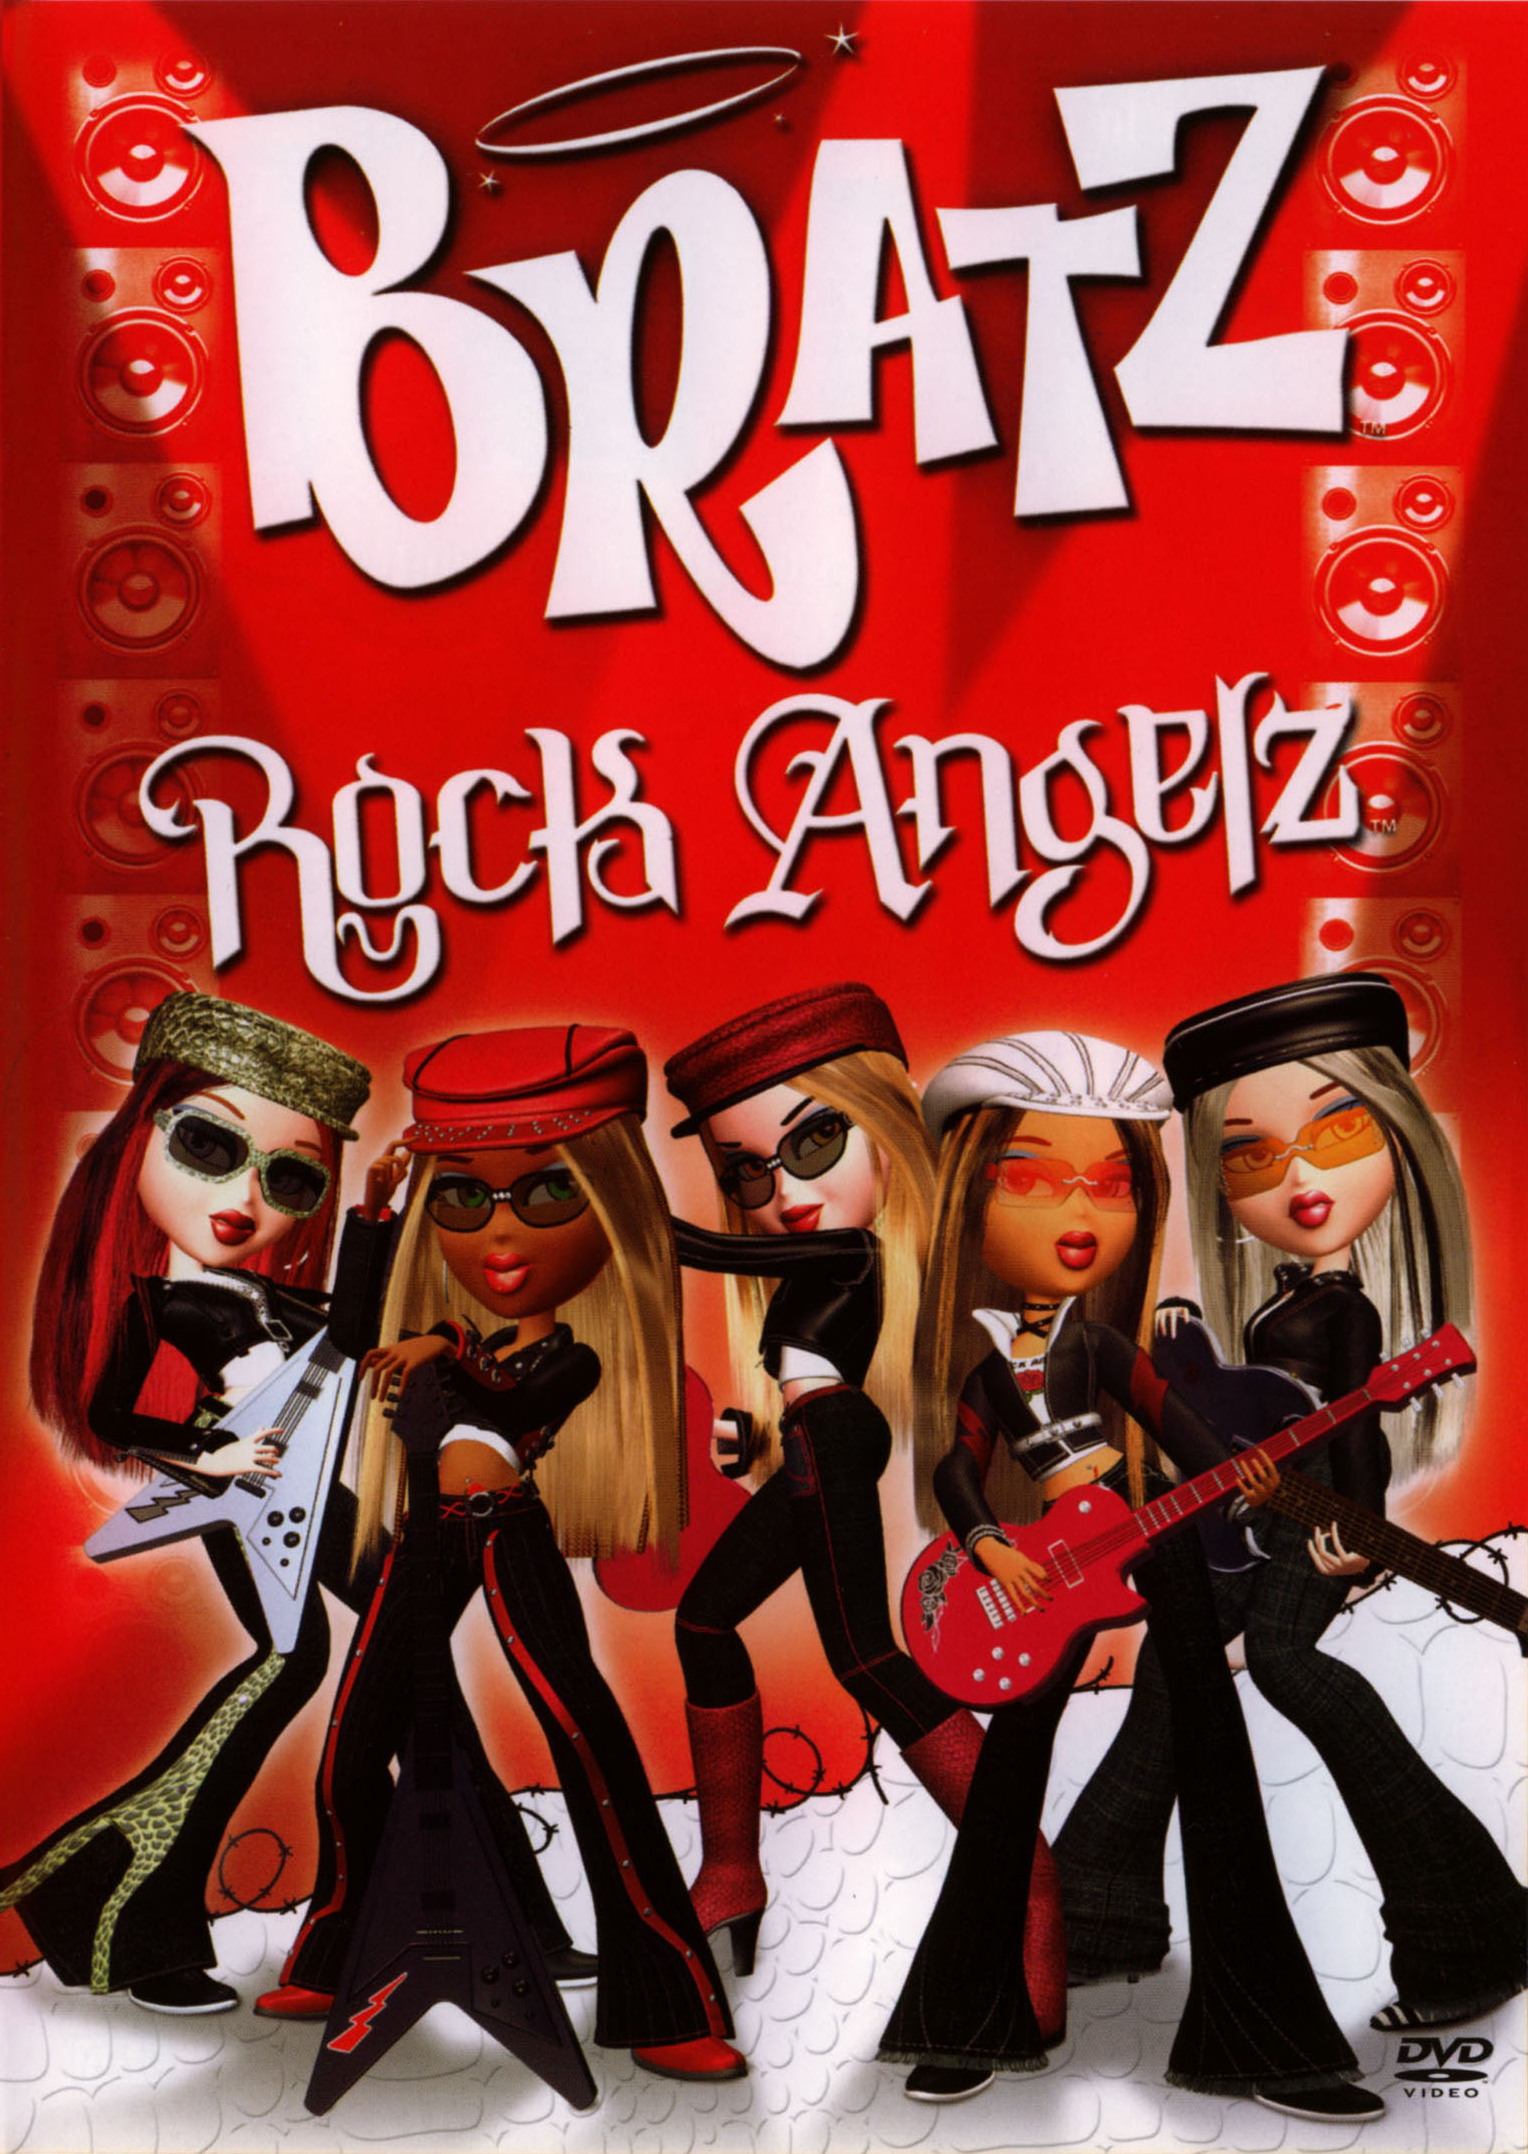 Bratz rock angelz dvd